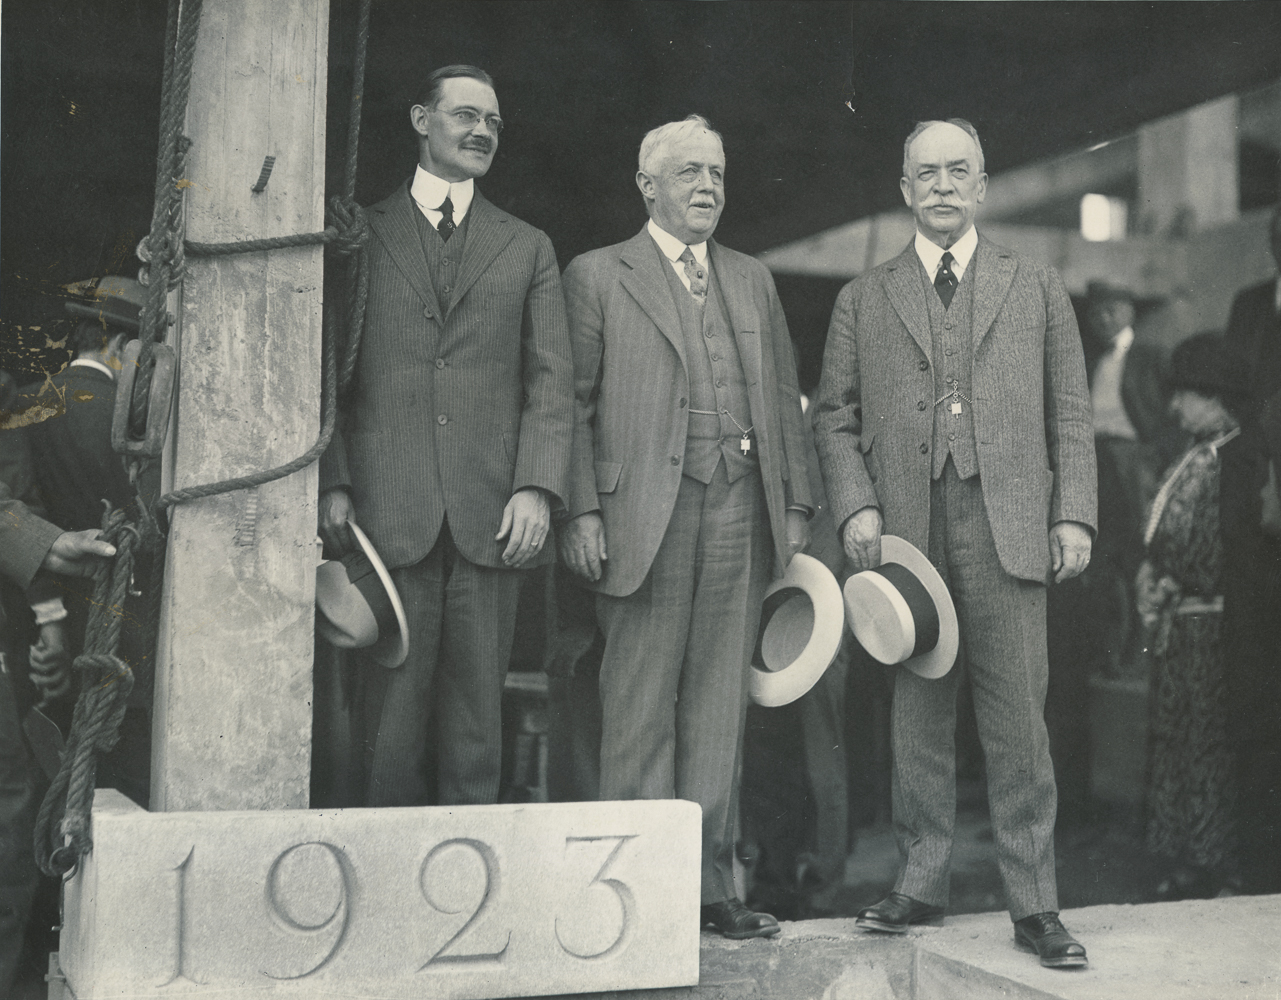 Rhees, Hill and Vedder at the SMD Cornerstone laying, 1923